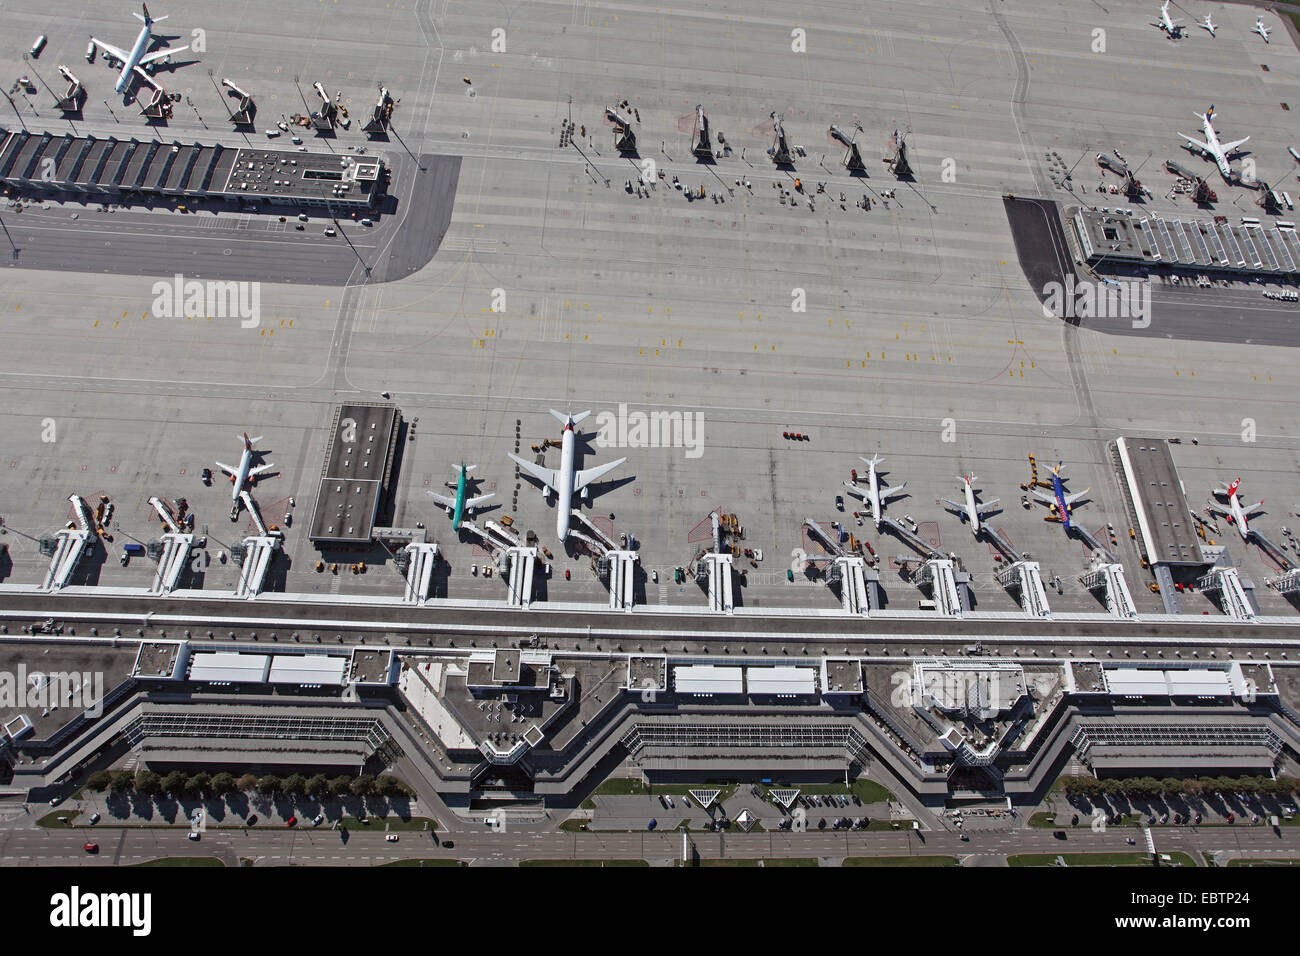 Munic airport, part of Terminal 1, Germany, Bavaria, Muenchen - Stock Image